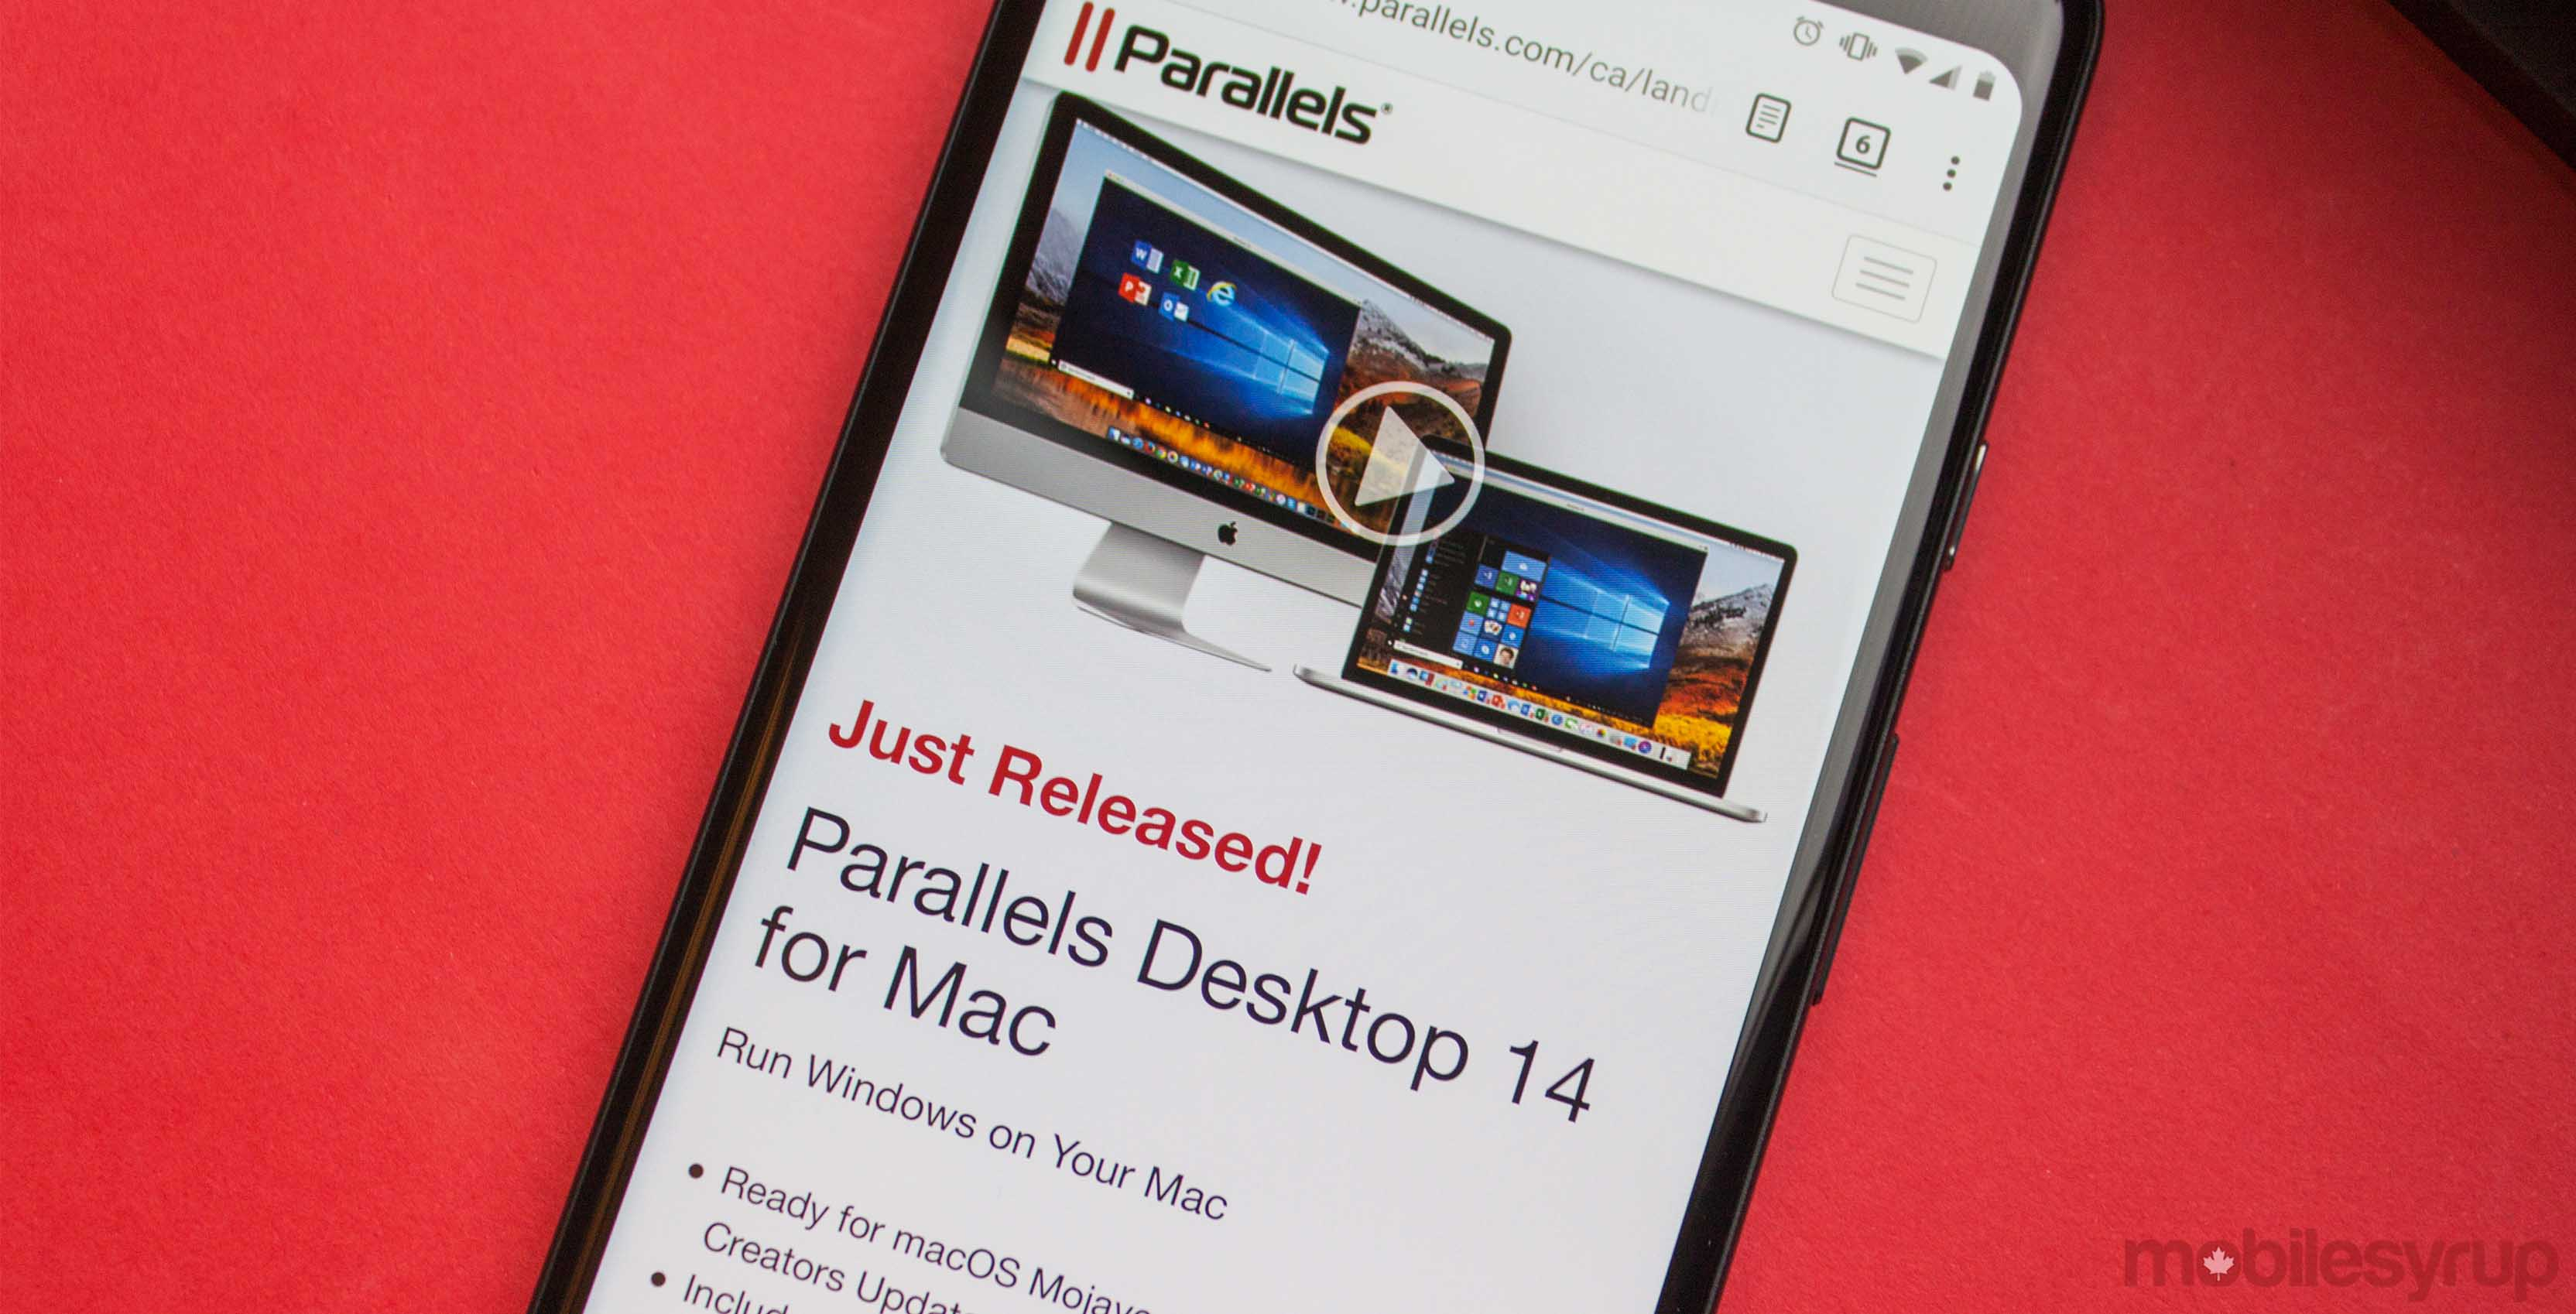 Parallels website on Android